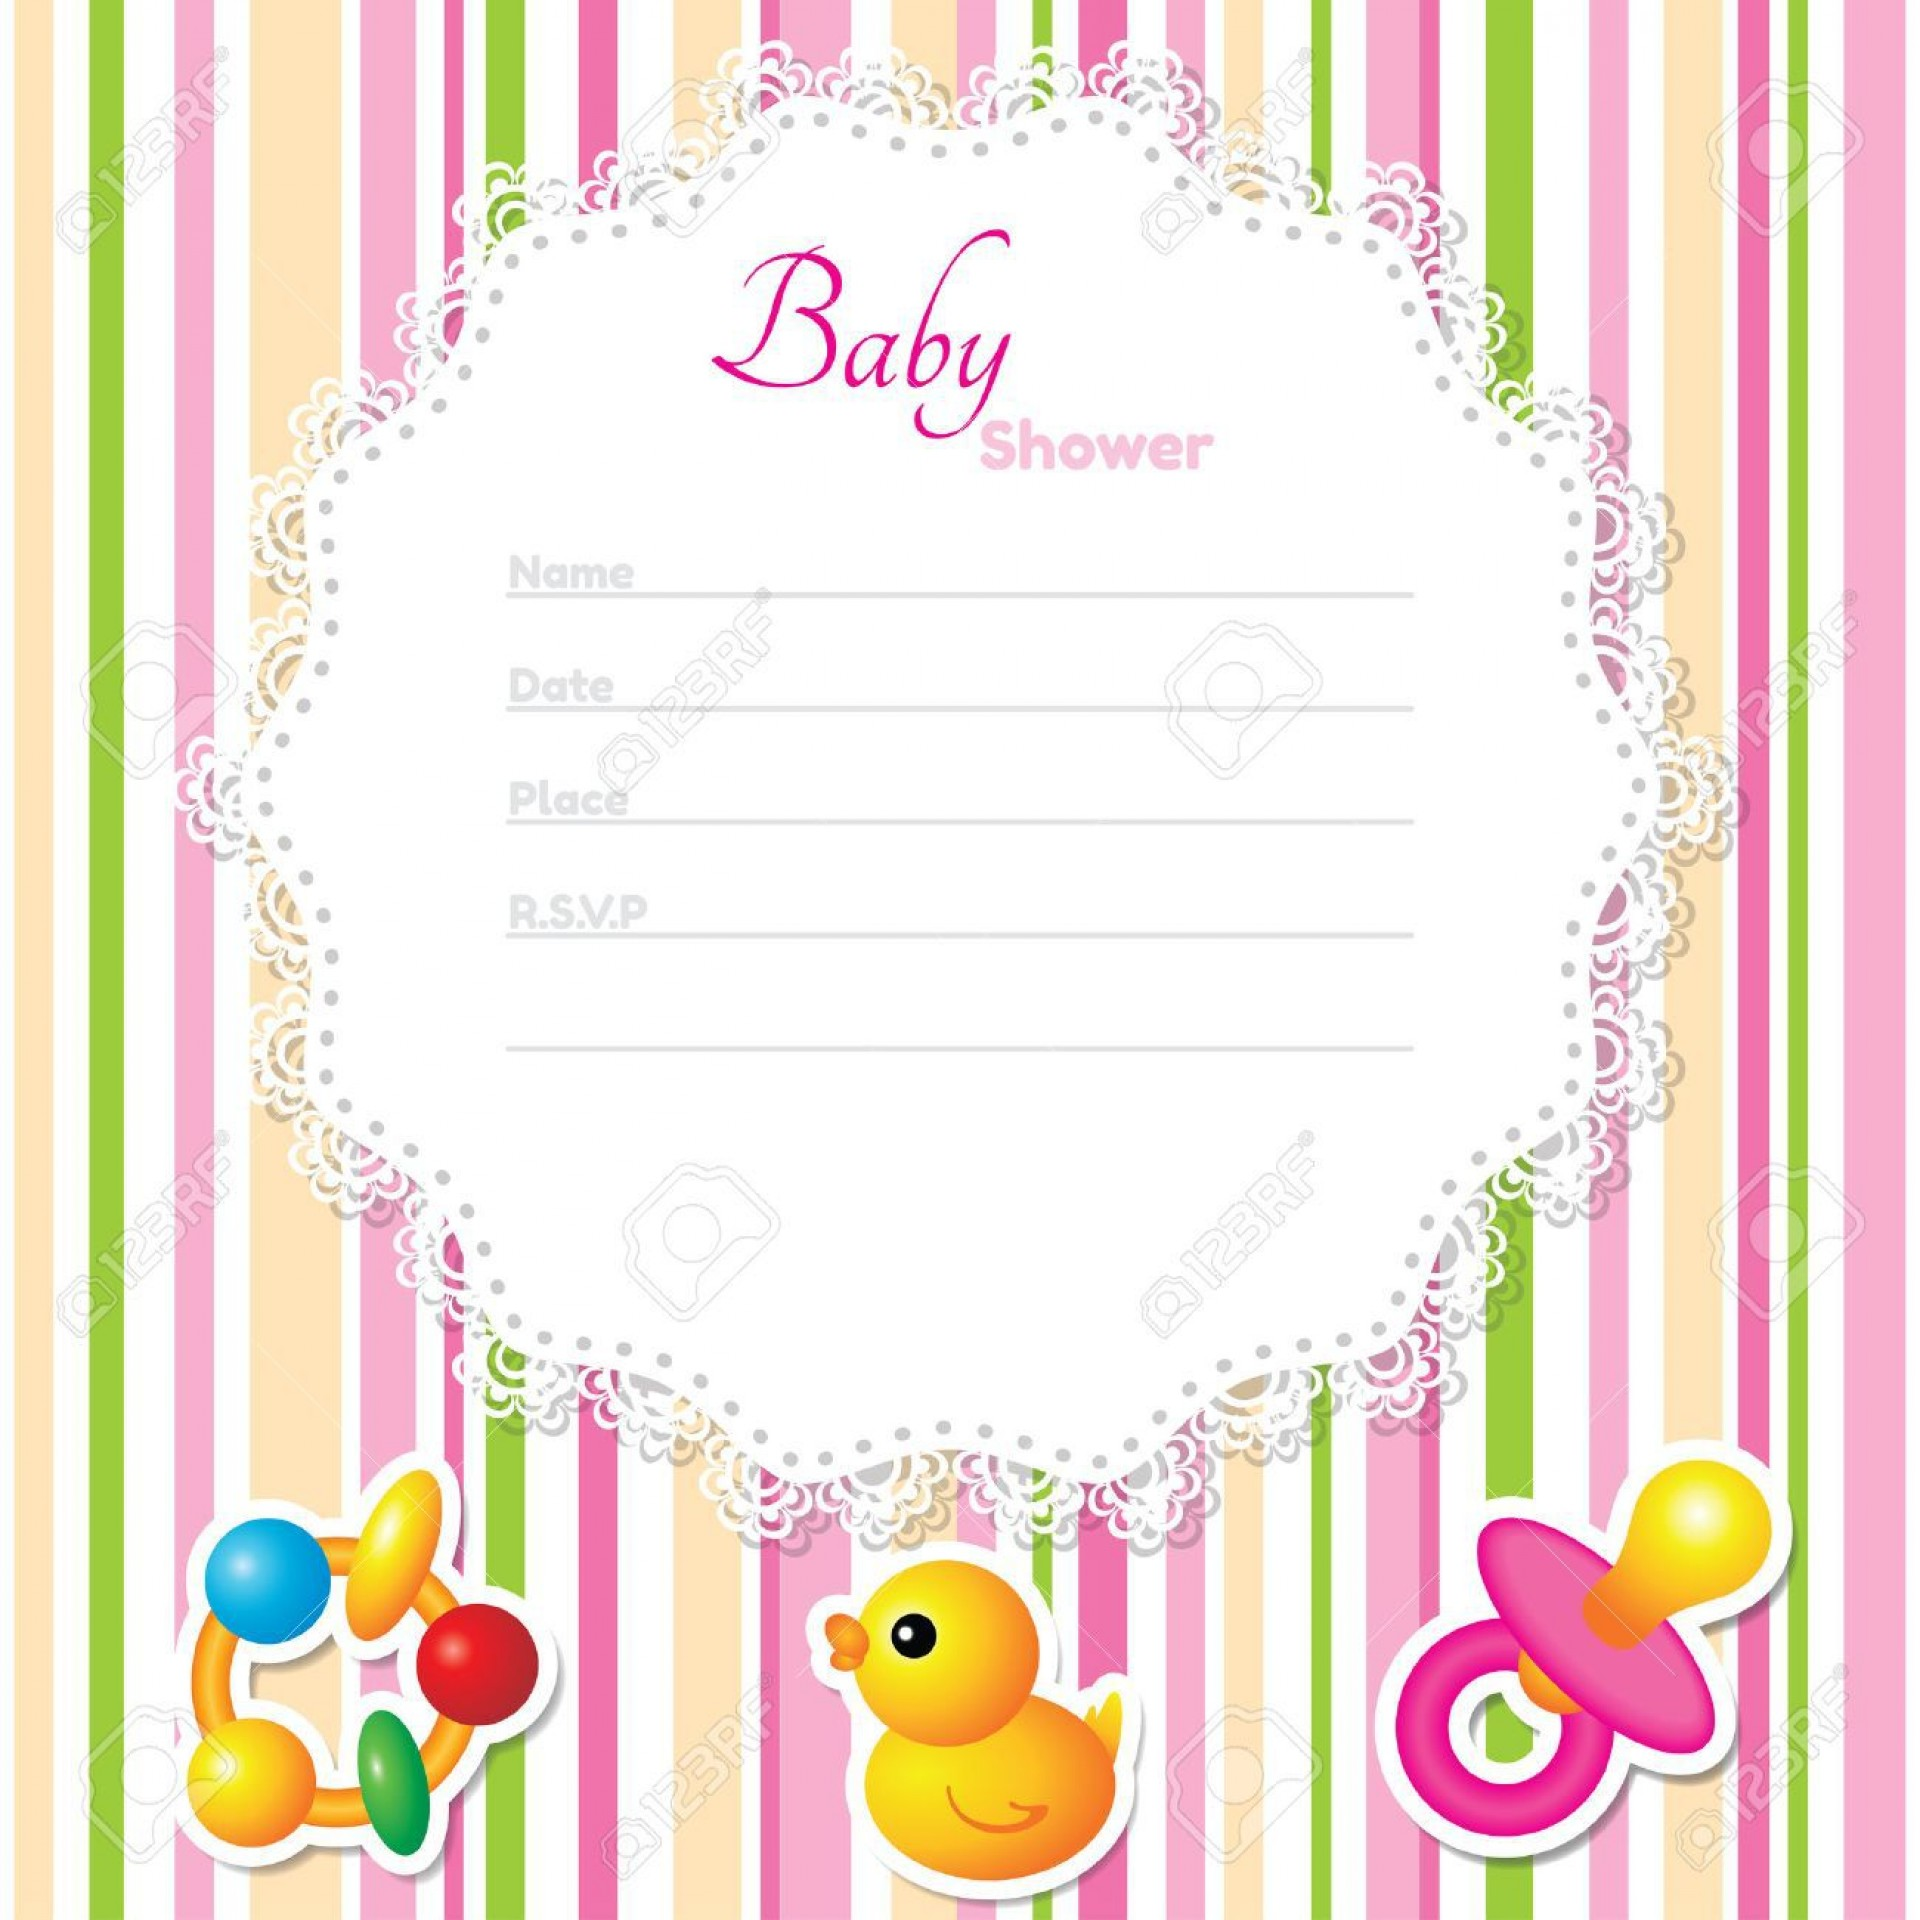 002 Awful Baby Shower Card Template Inspiration  Microsoft Word Invitation Design Online Printable Free1920